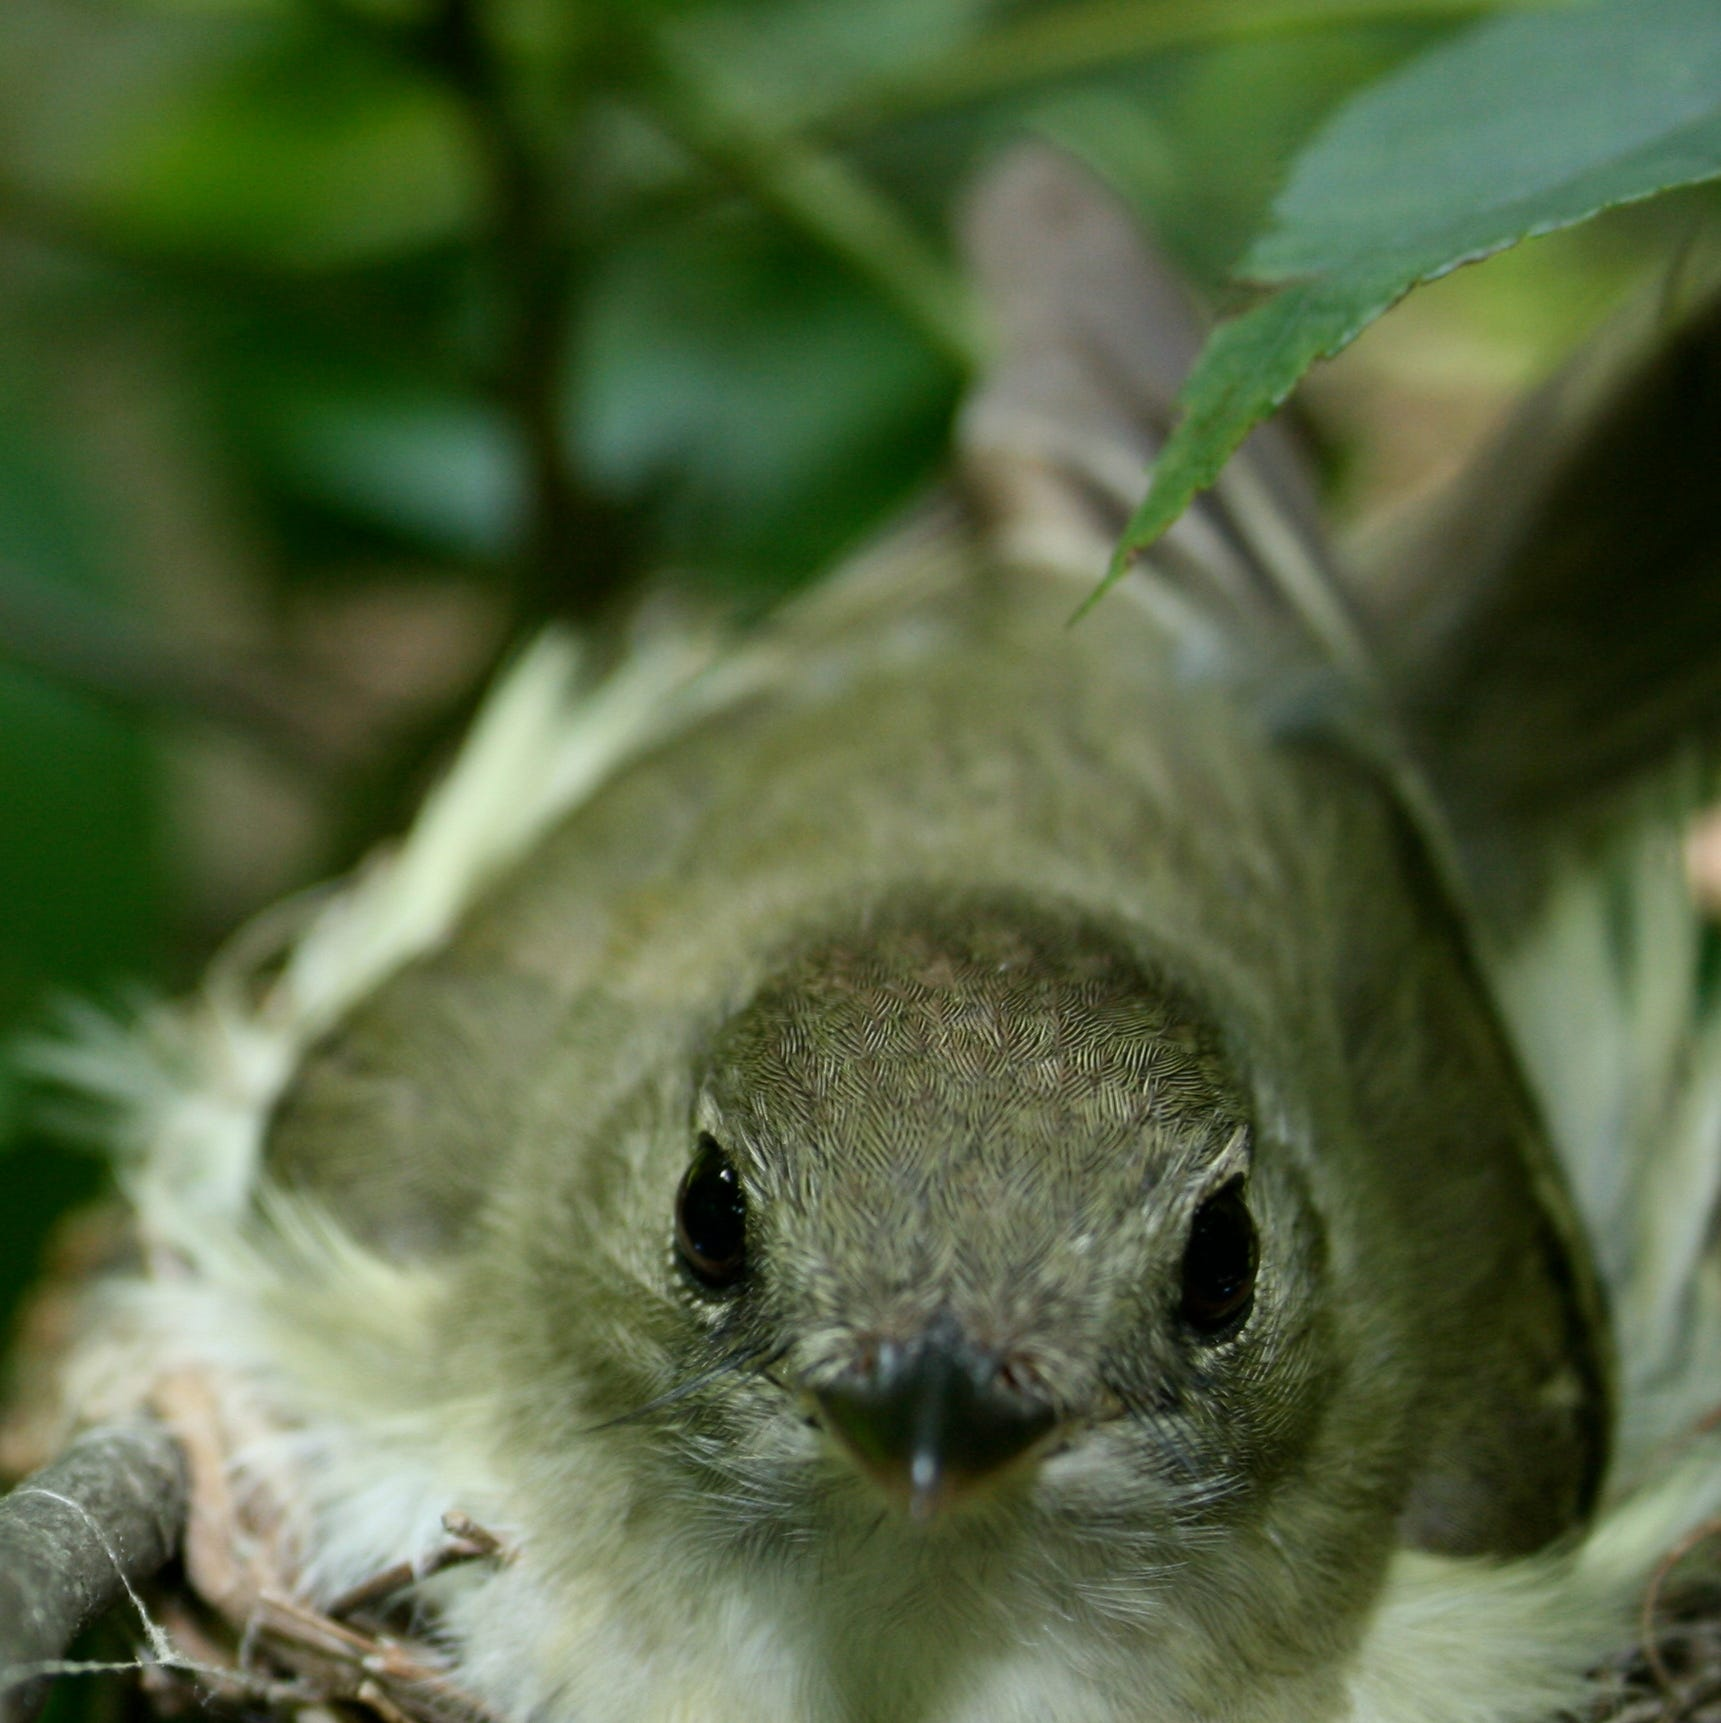 Common Indiana songbird under threat from climate change